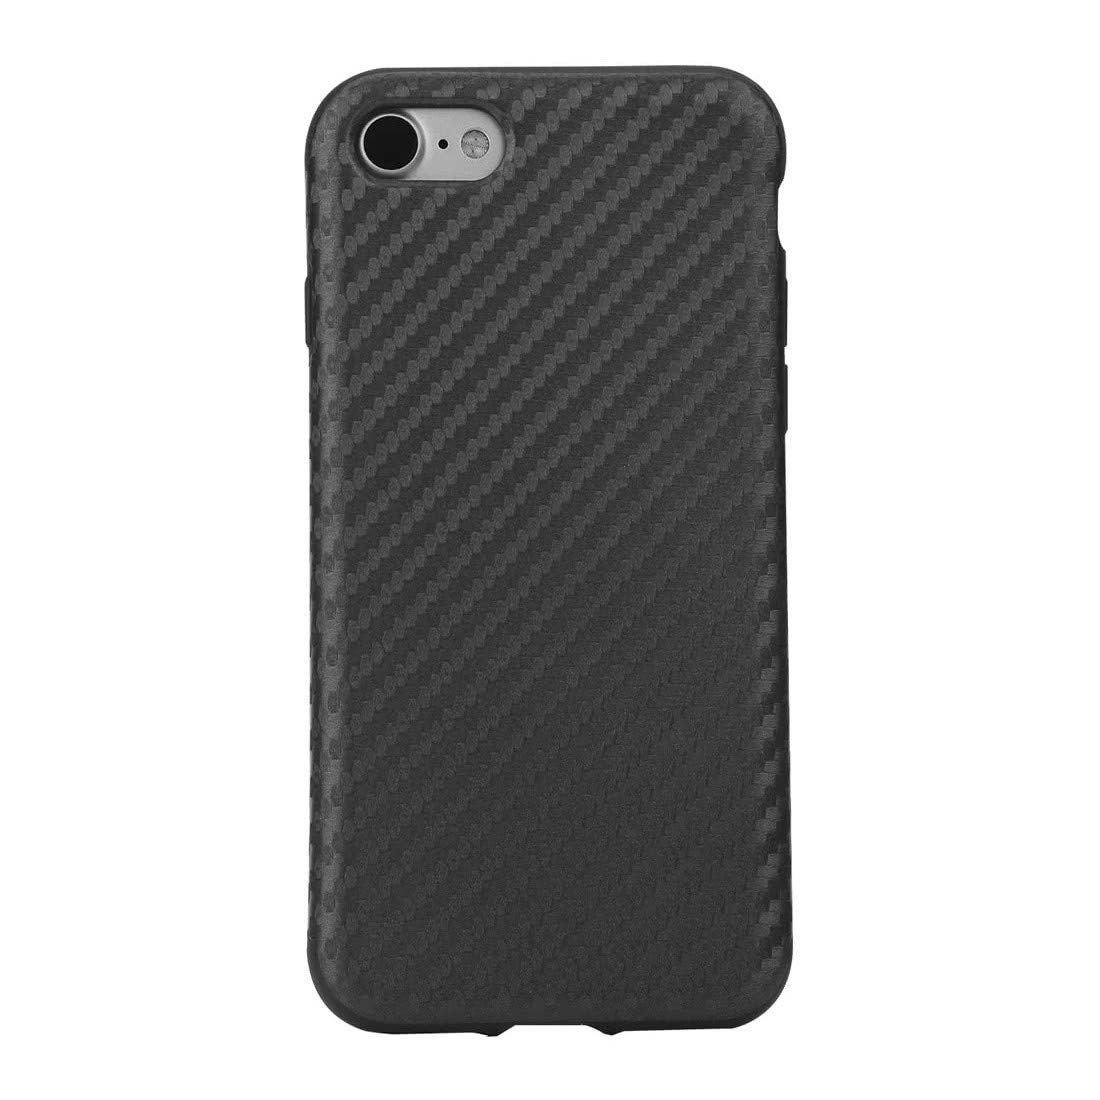 Carbon Fiber Phone Case Full Protect Phone Cover Protective Shell Case for iPhone 7